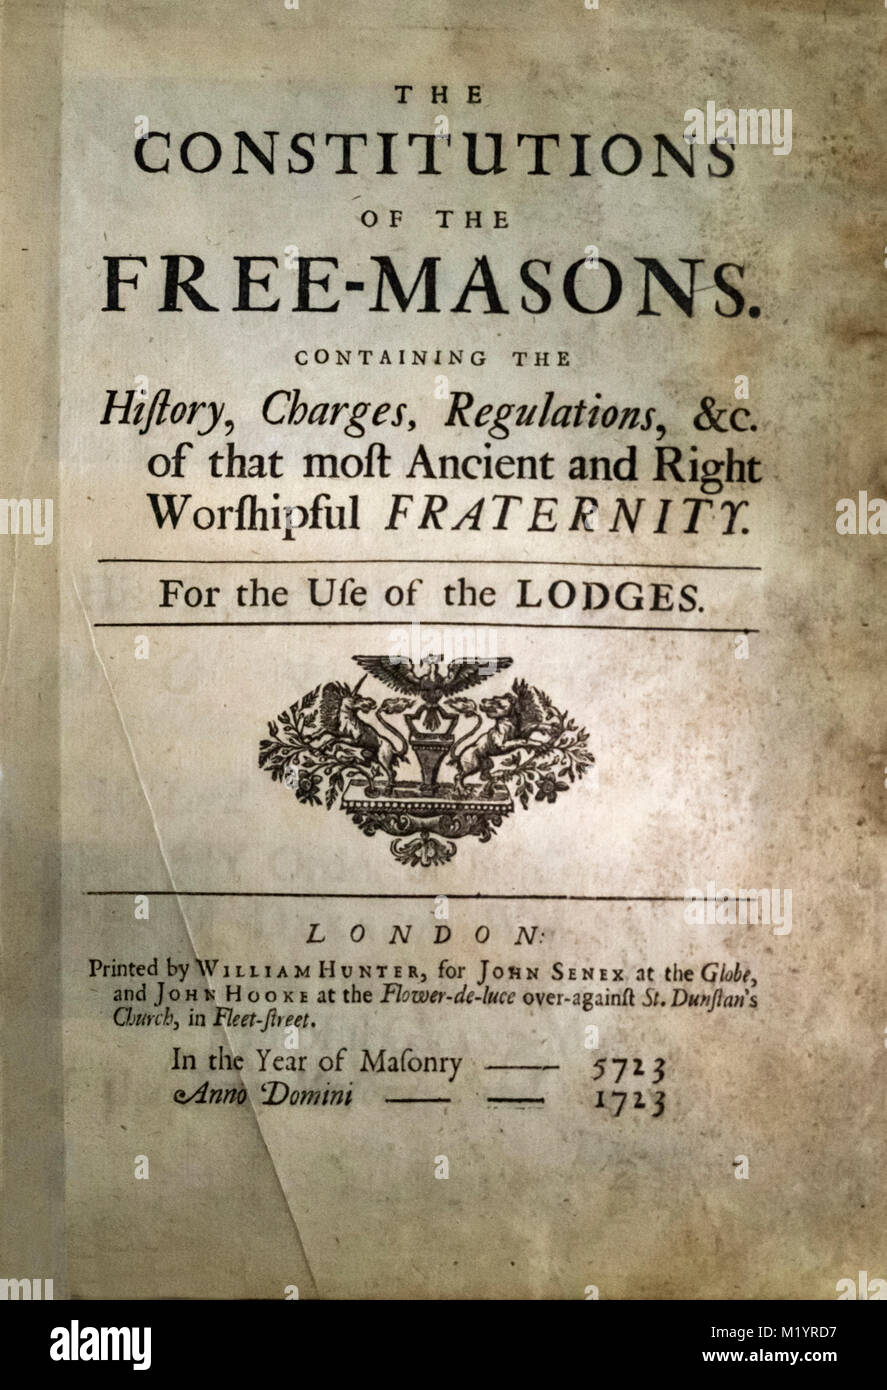 'The Constitutions of the Free-Masons', frontispiece of a 1723 edition of the constitution of the Freemasons. - Stock Image